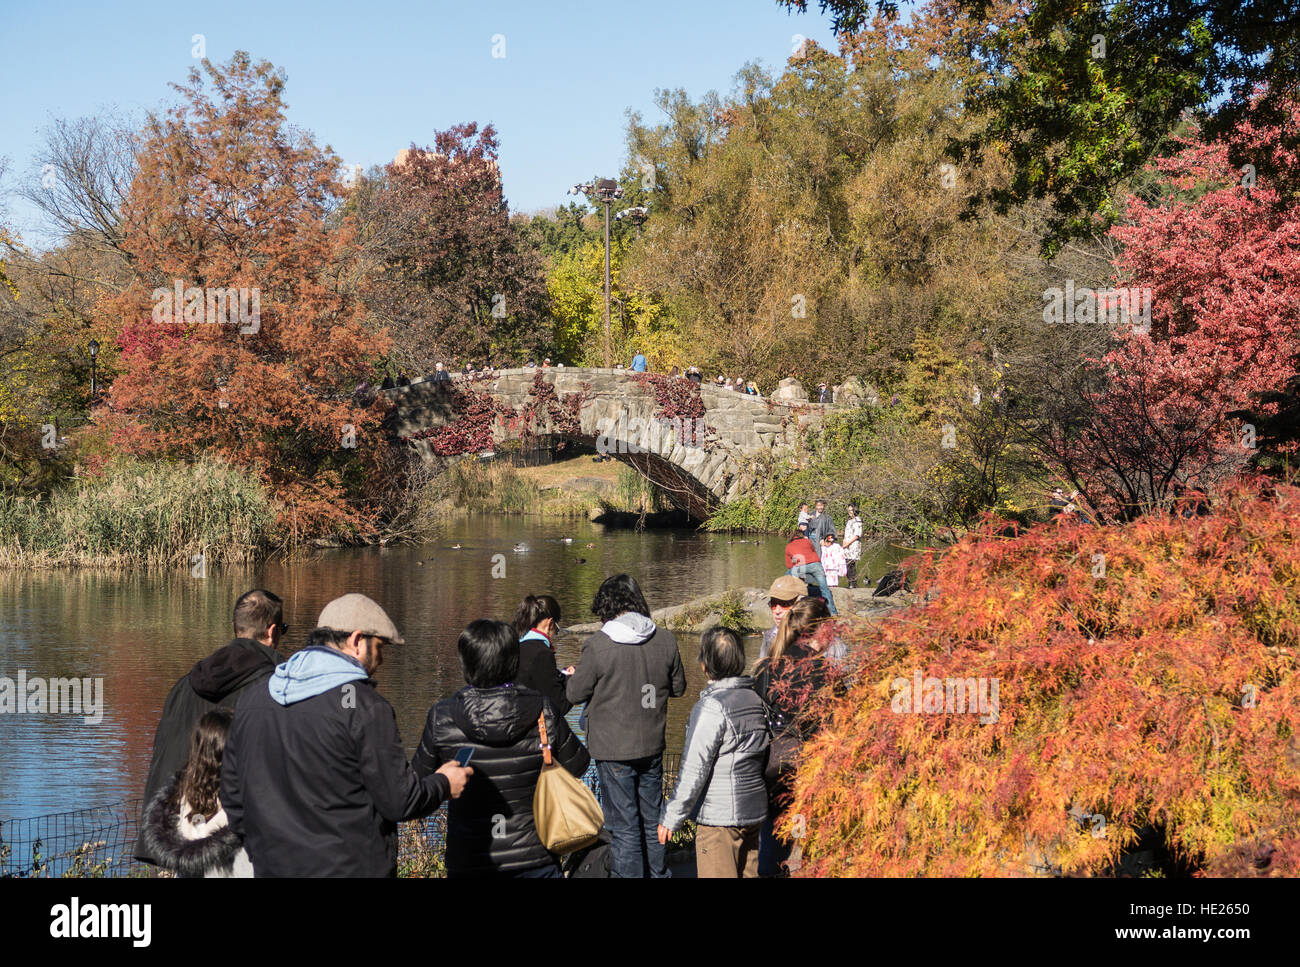 The Pond and Gapstow Bridge, Central Park, NYC - Stock Image